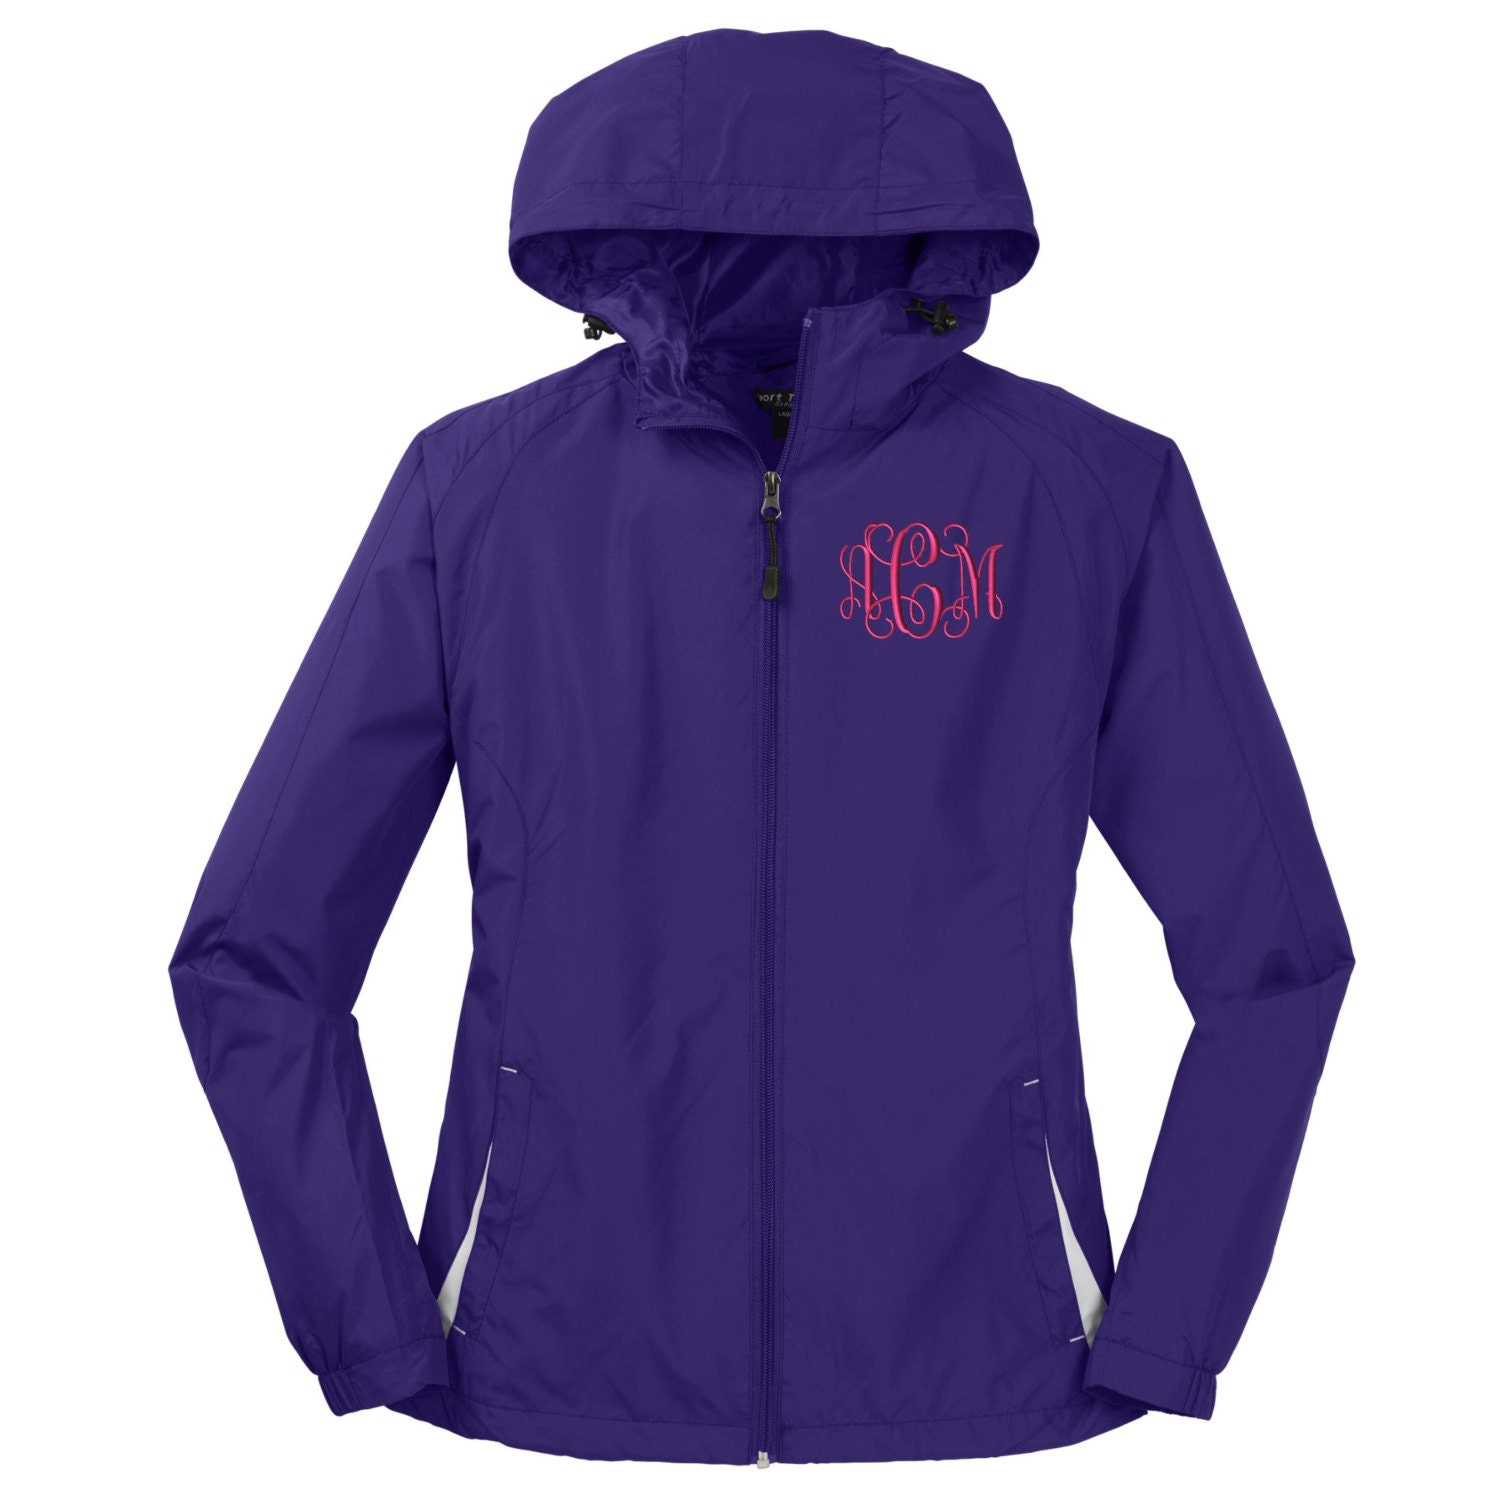 Monogrammed Ladies Hooded Rain Jacket Hooded Windbreaker